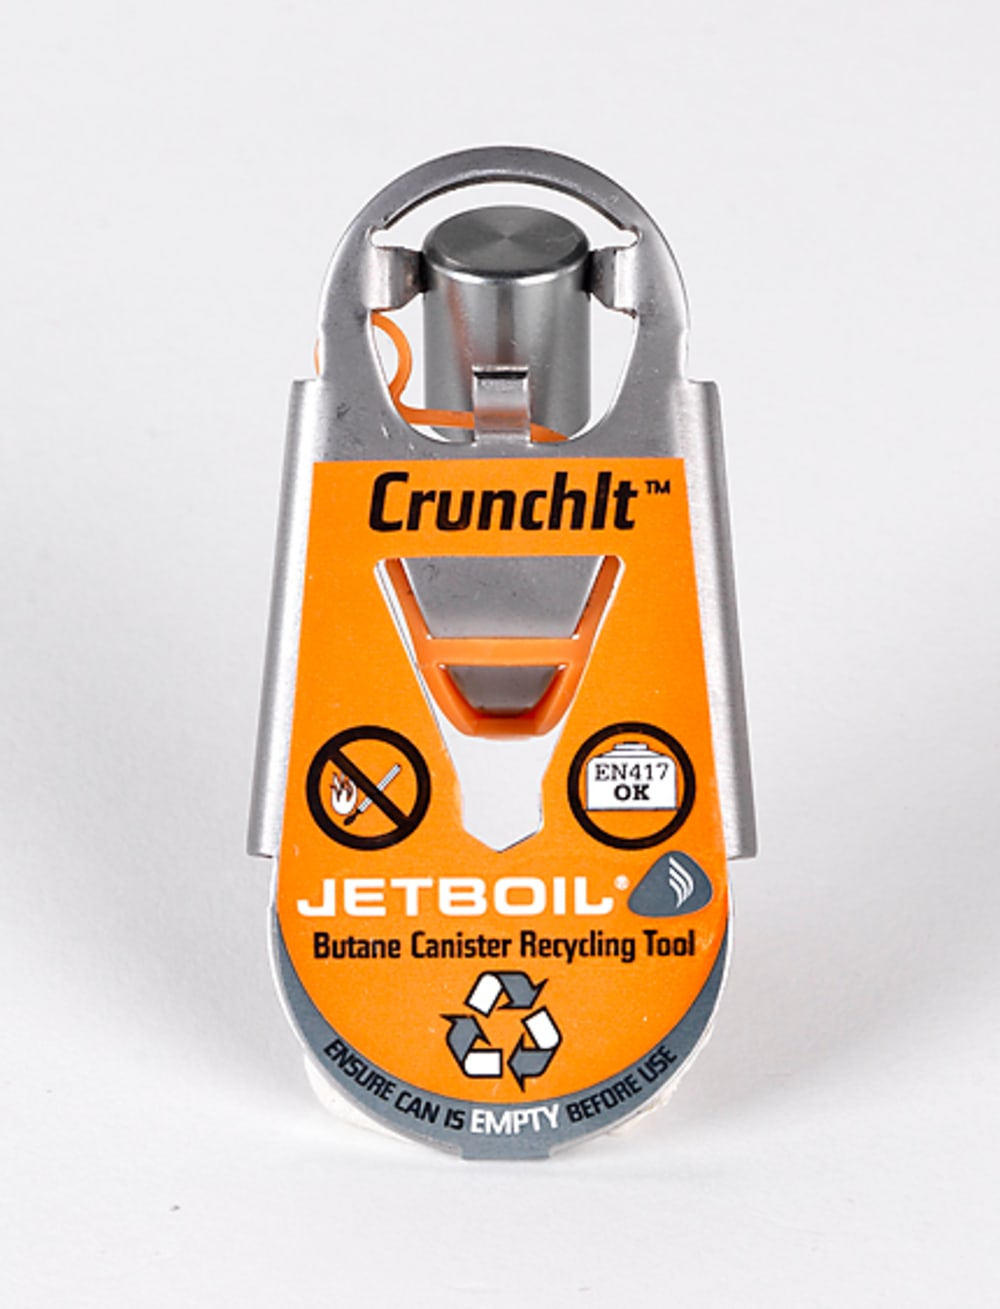 JETBOIL CrunchIt Butane Canister Recycling Tool - NONE